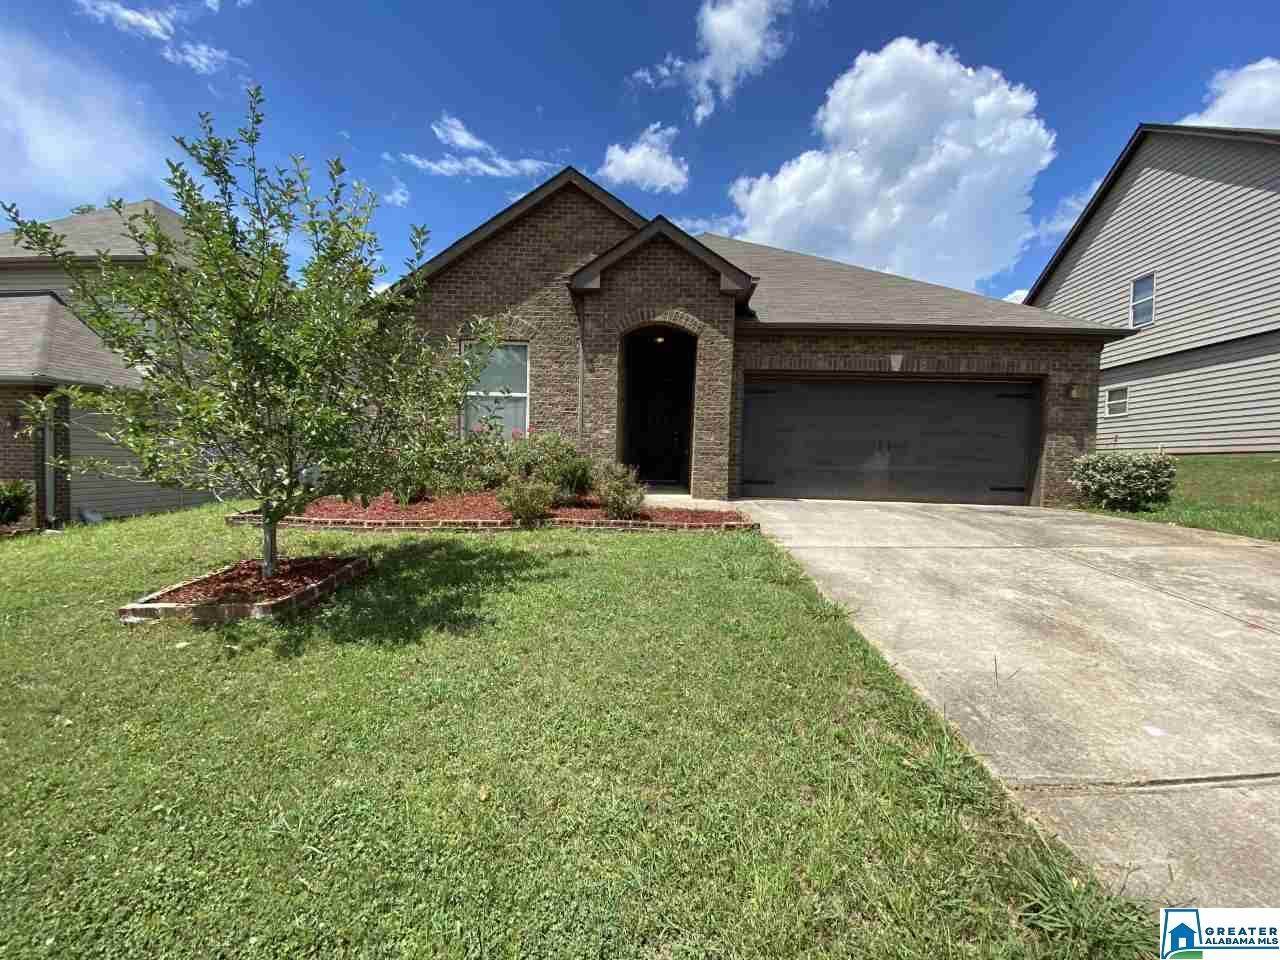 4362 Winchester Hills Dr - Photo 1